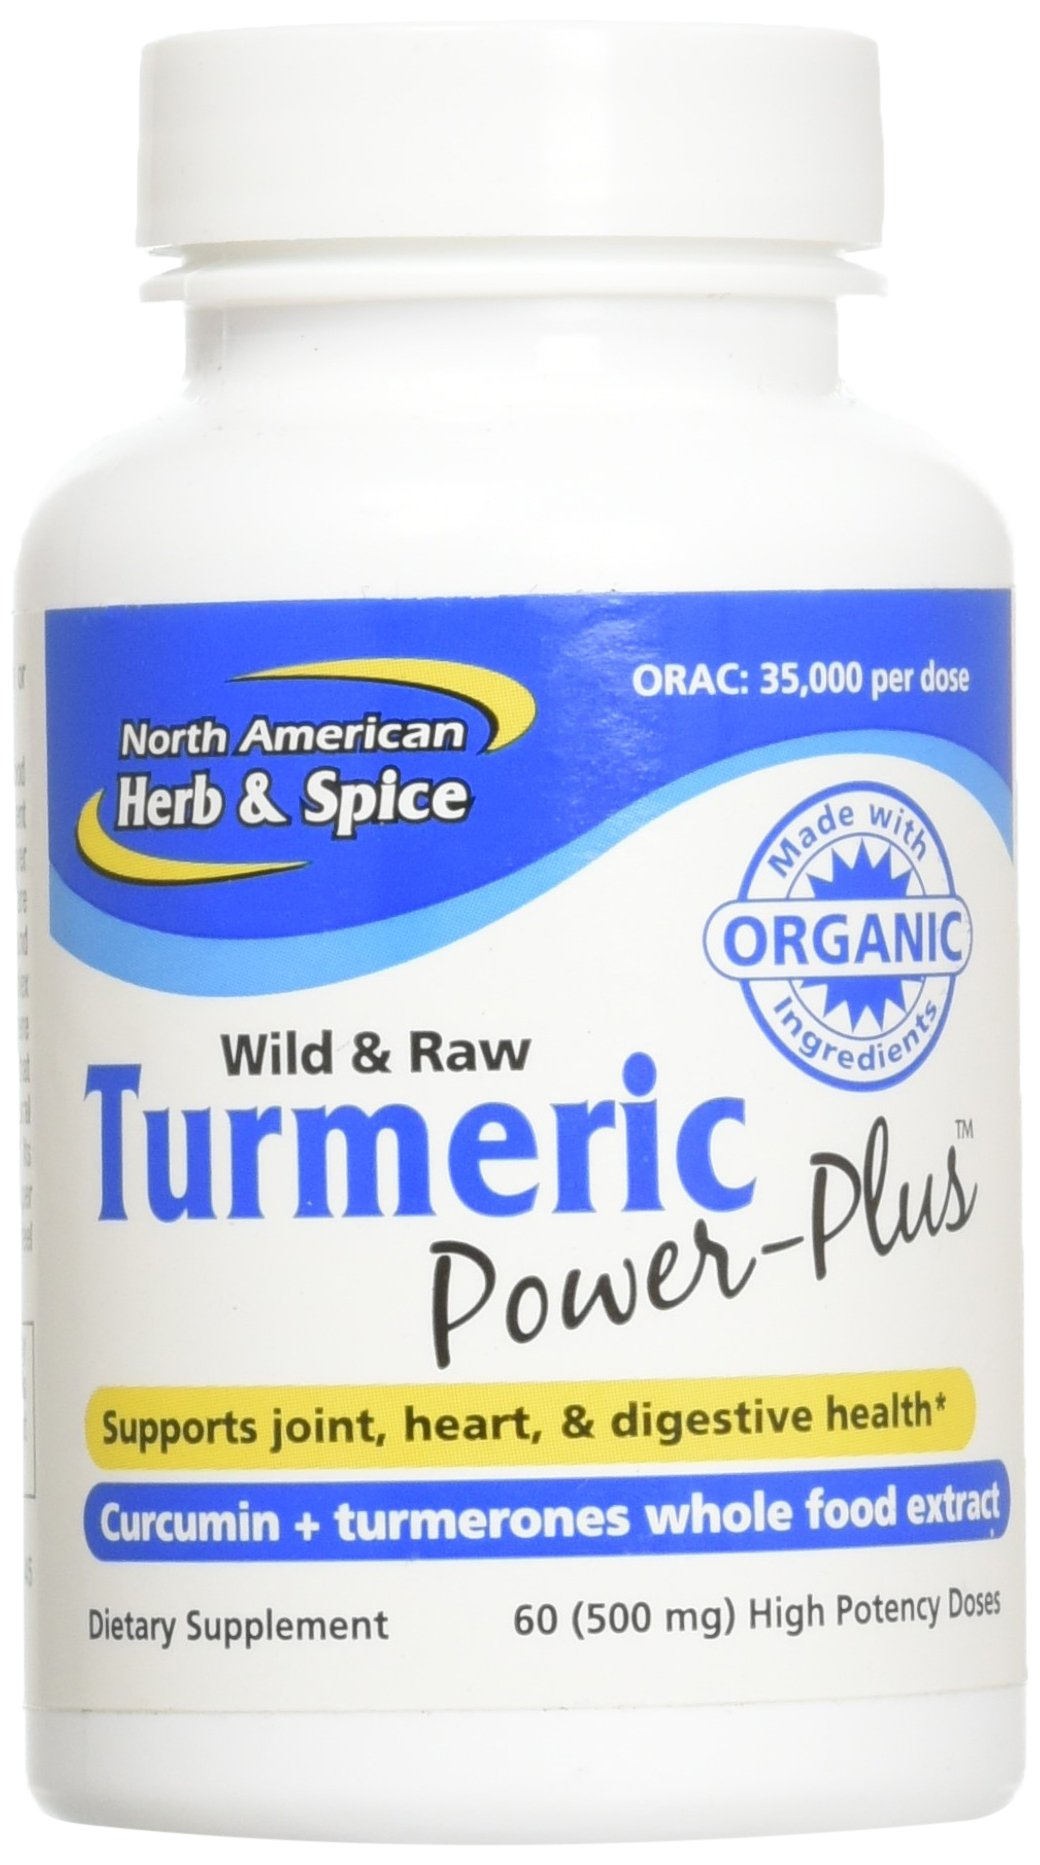 Amazon.com: North American Herb & Spice Turmeric Power-Plus Gels, 60 Count: Health & Personal Care